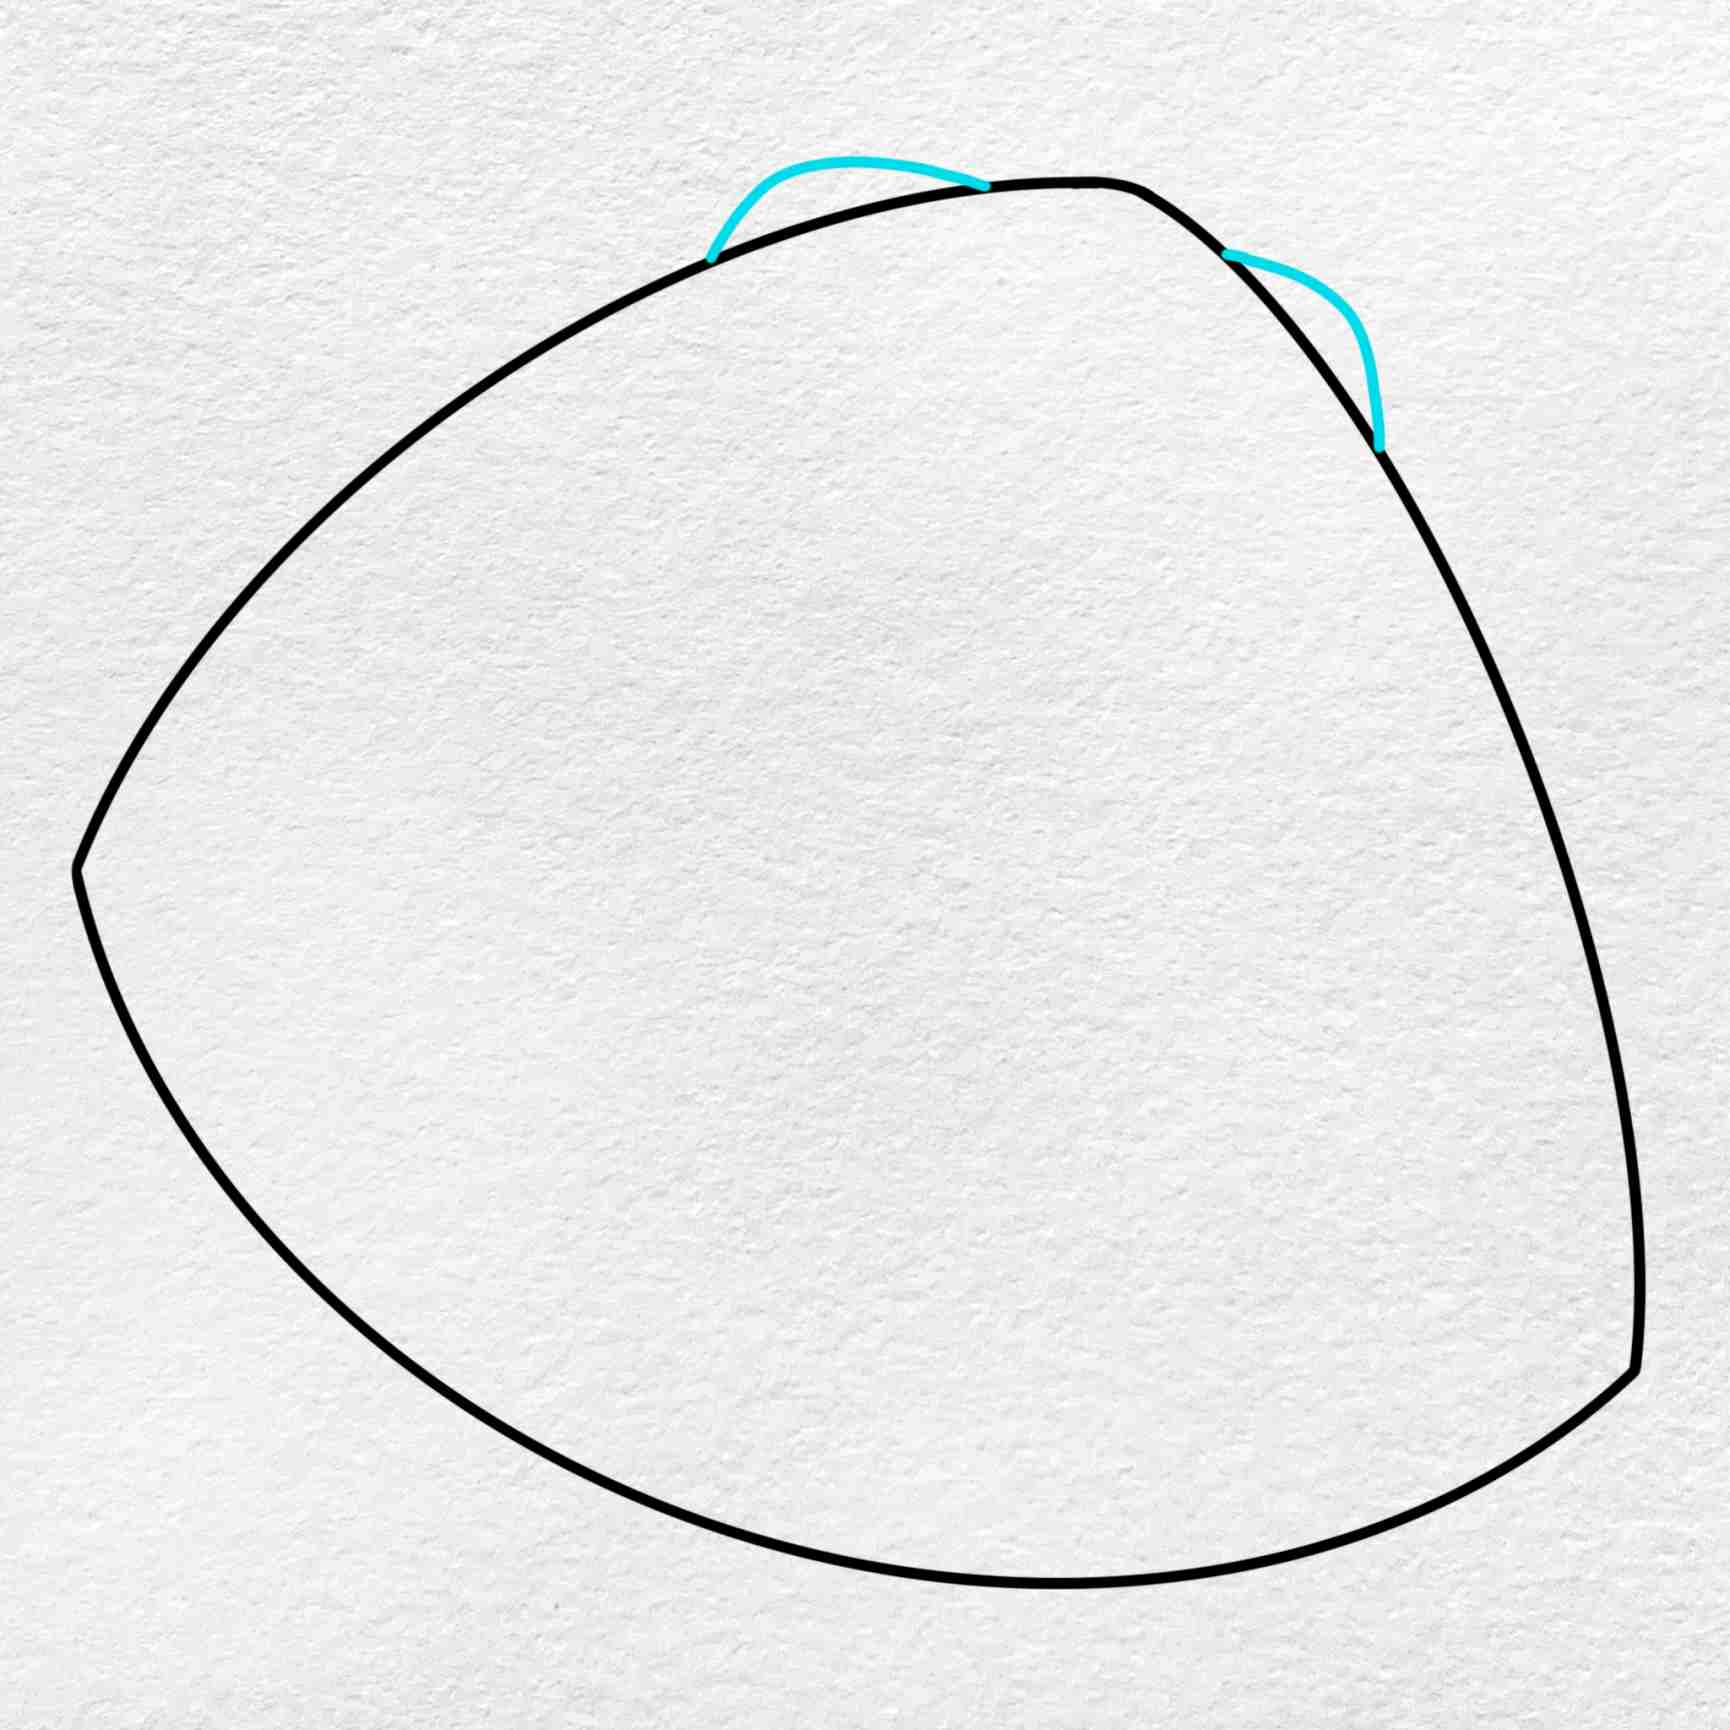 Clam Drawing: Step 3